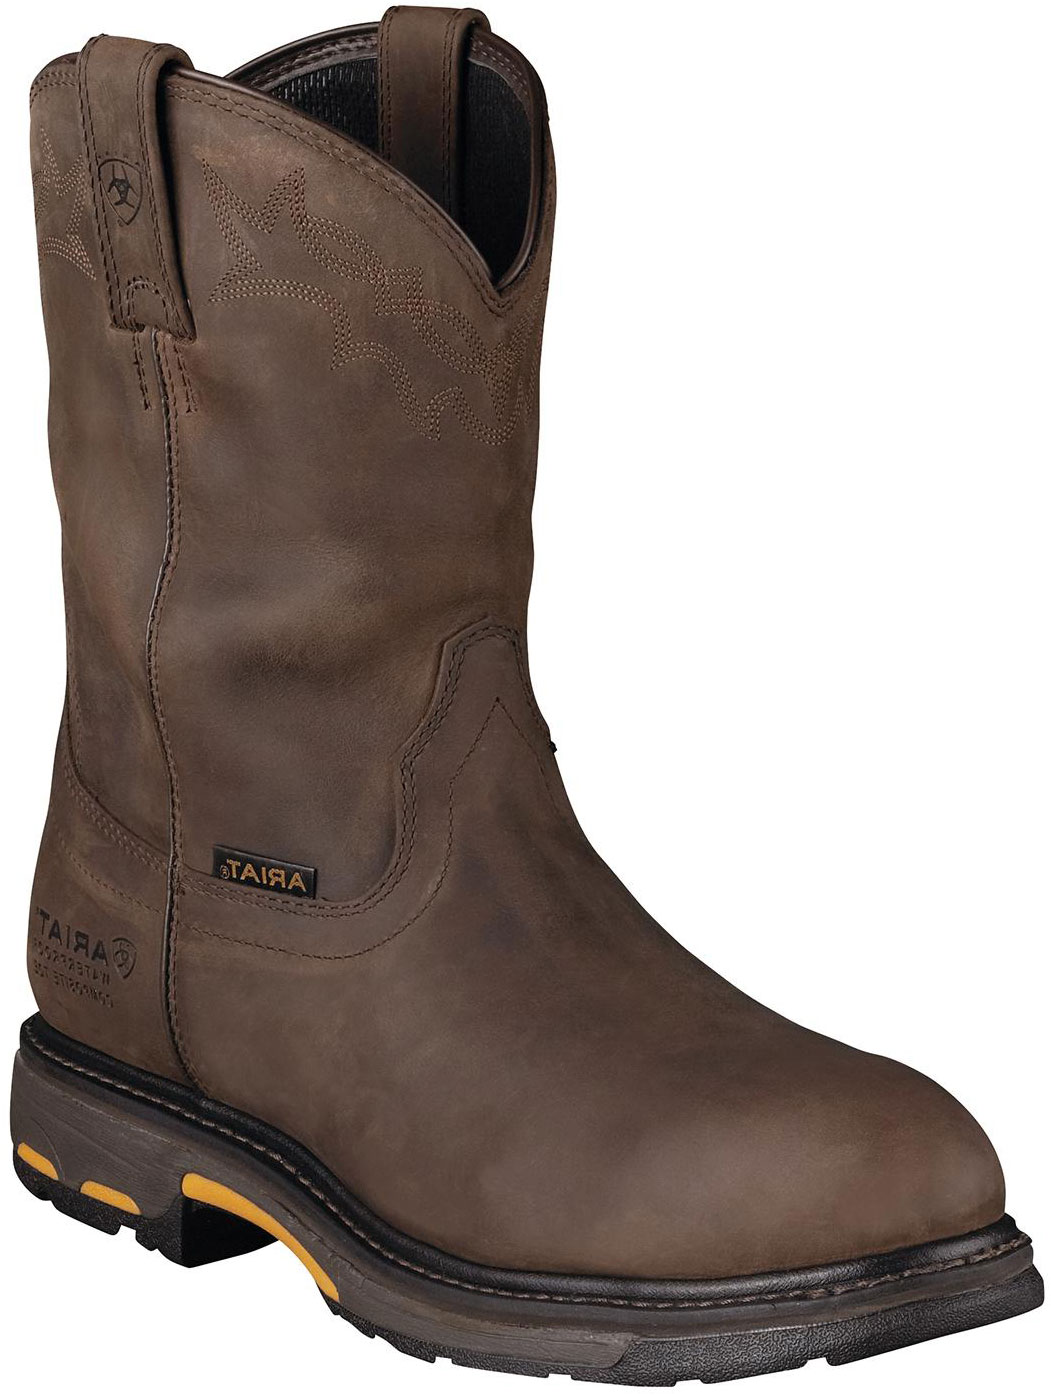 Osha Composite Toe Boots Image Collections Boot